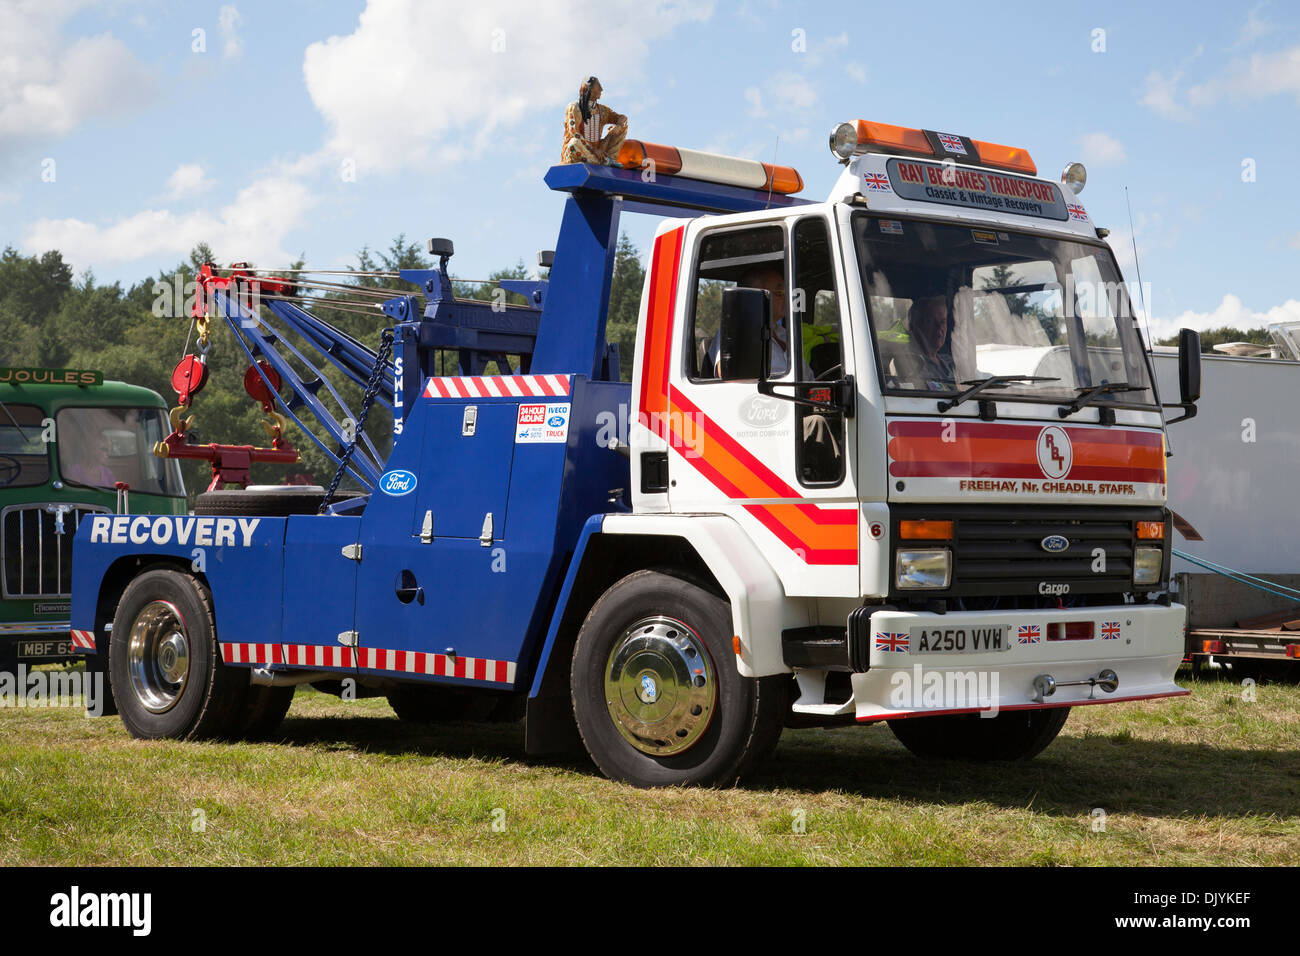 A Ford Cargo recovery truck. - Stock Image